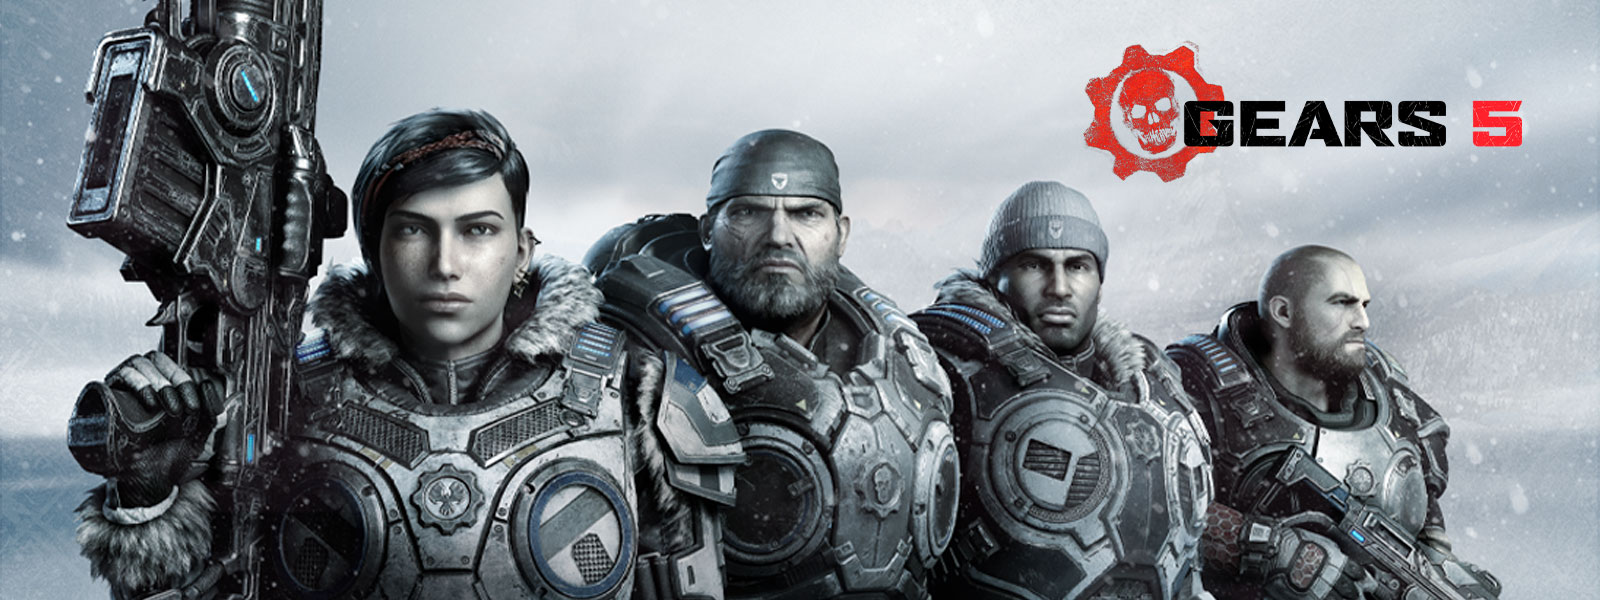 Kait Diaz and other characters from Gears 5 stand in a line with their weapons drawn